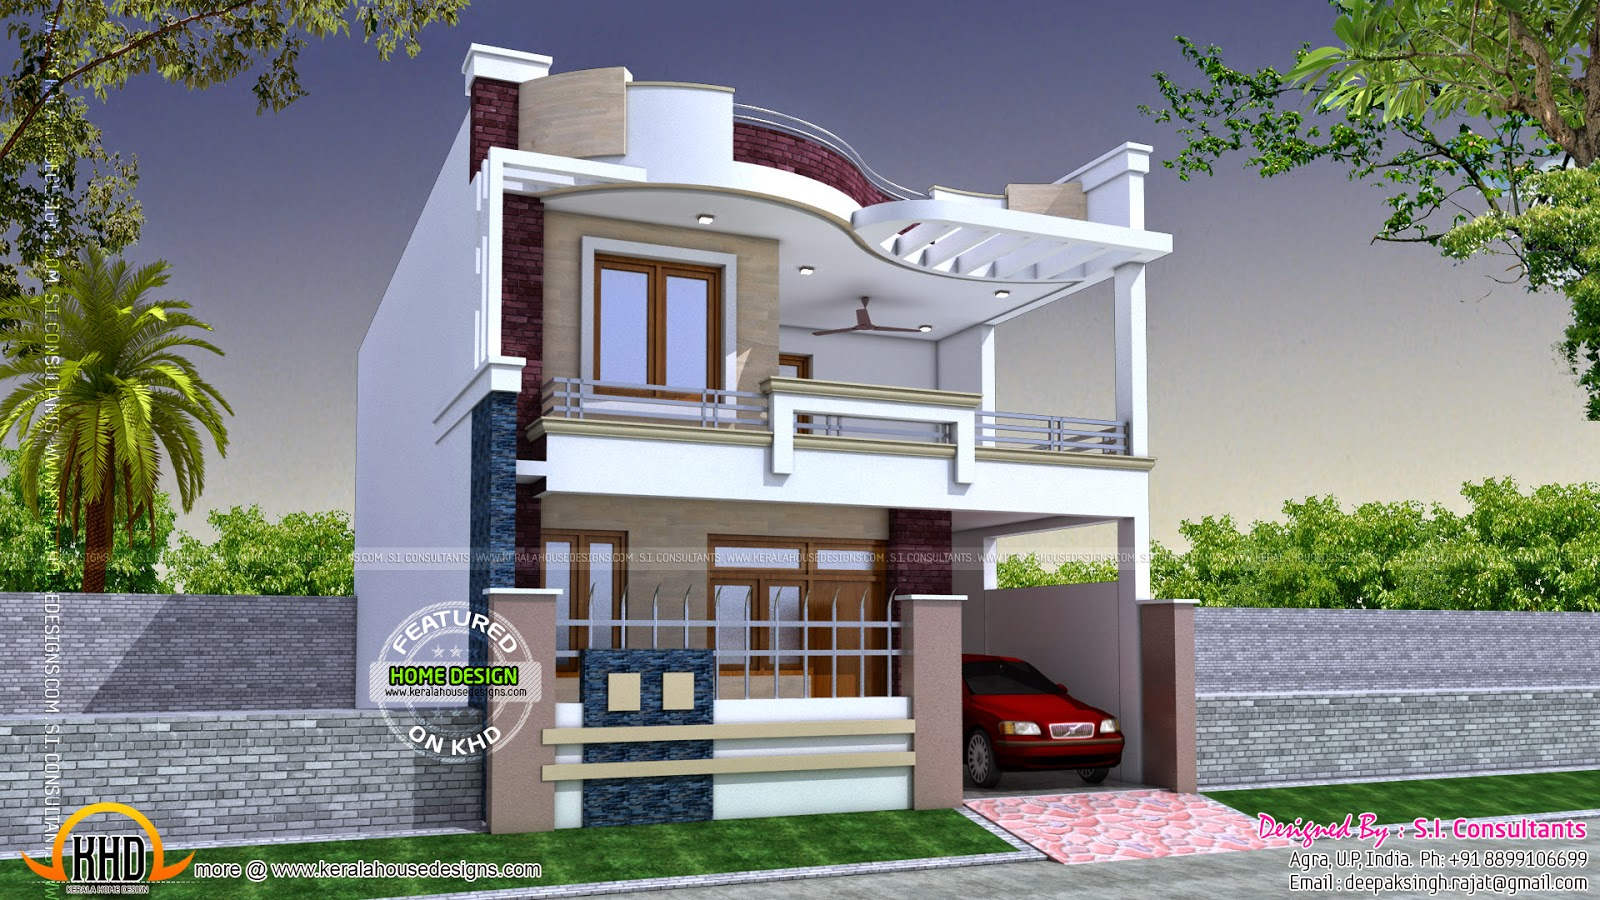 Modern indian home design kerala home design and floor plans Indian building photos